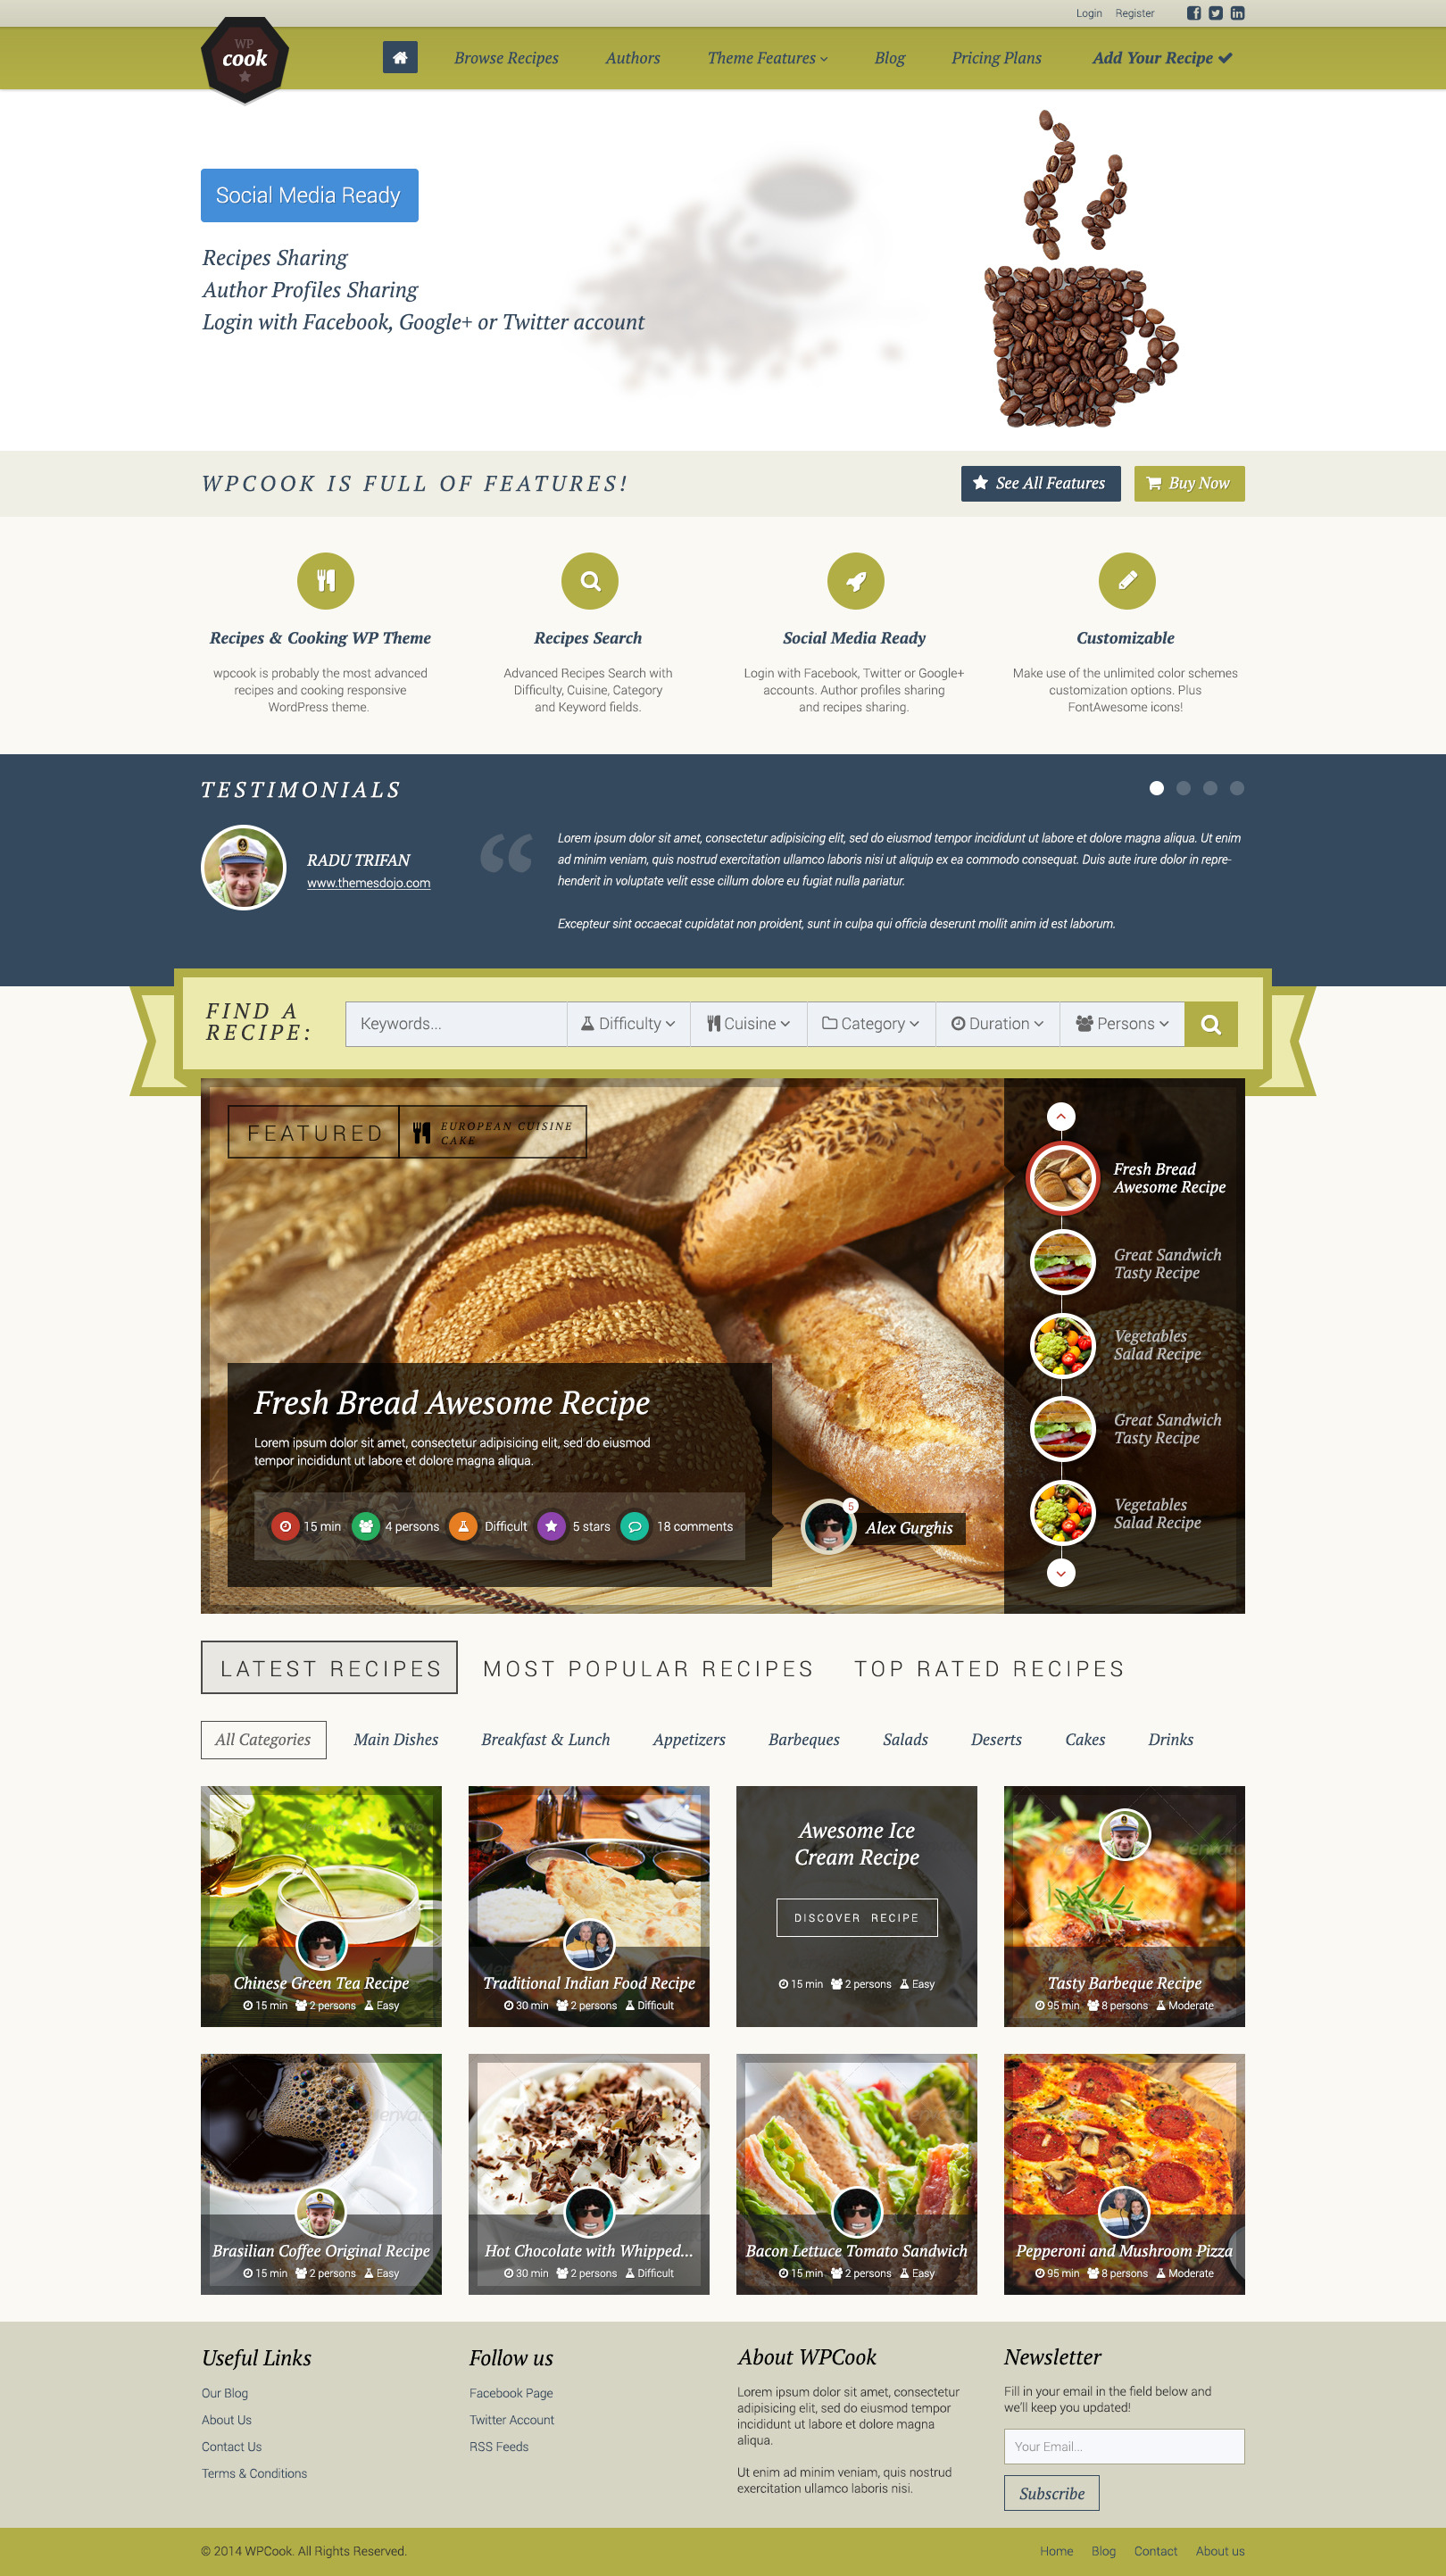 Psdcook recipes cooking psd design by themes dojo themeforest previewswpcook frontpageg previewswpcook recipeg previewswpcook registerg previewswpcook search resultsg previewswpcook shopg forumfinder Gallery